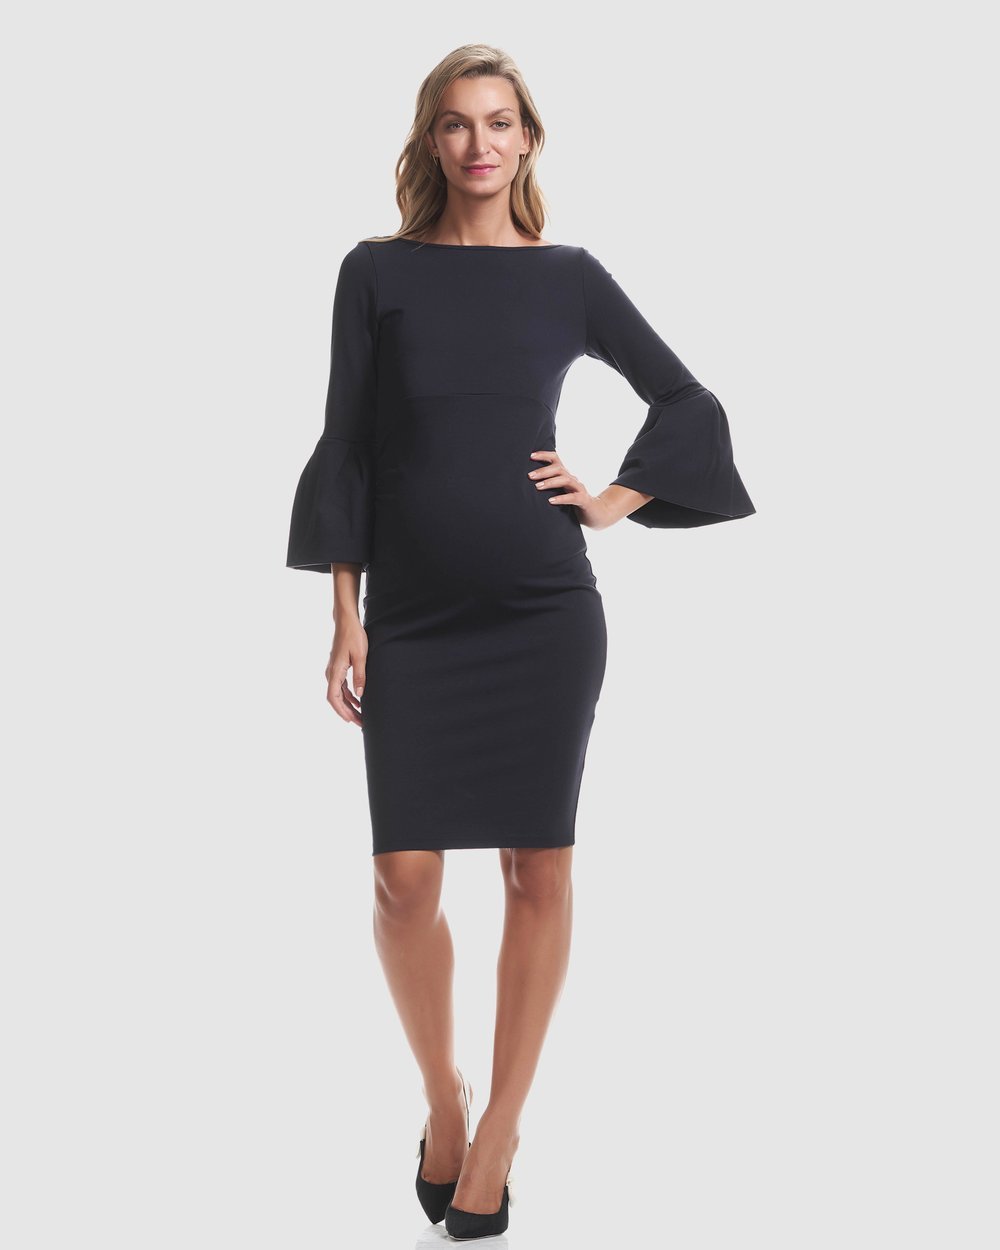 ceacfd35d3d8 Myra Ruffle Maternity Dress by Soon Maternity Online | THE ICONIC |  Australia